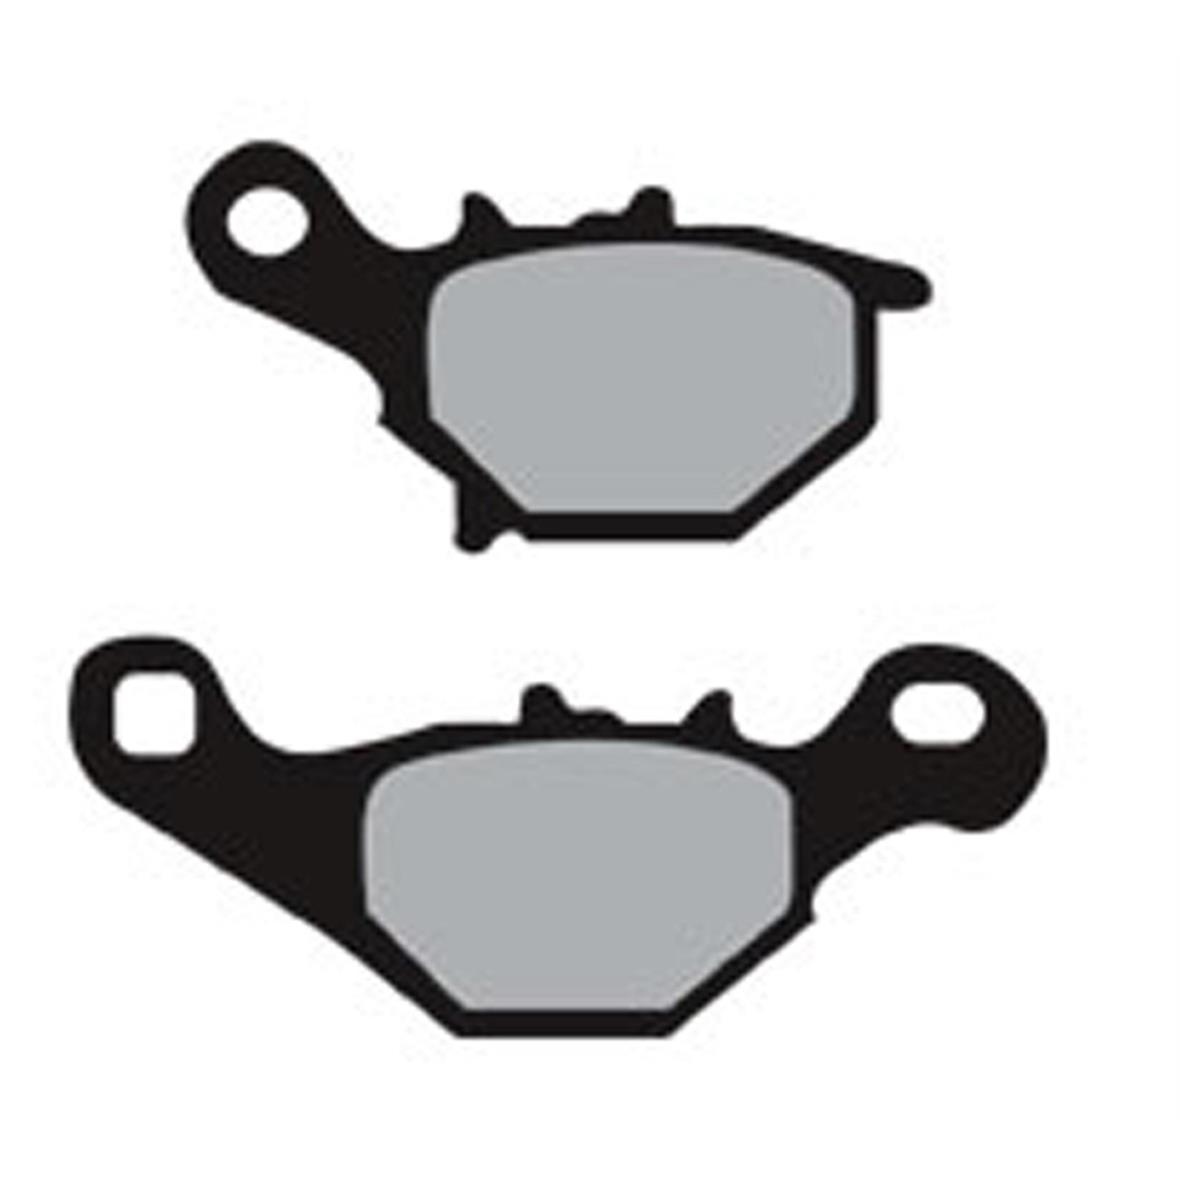 Product Image for 'Brake Pads MALOSSI Sport S47Title'